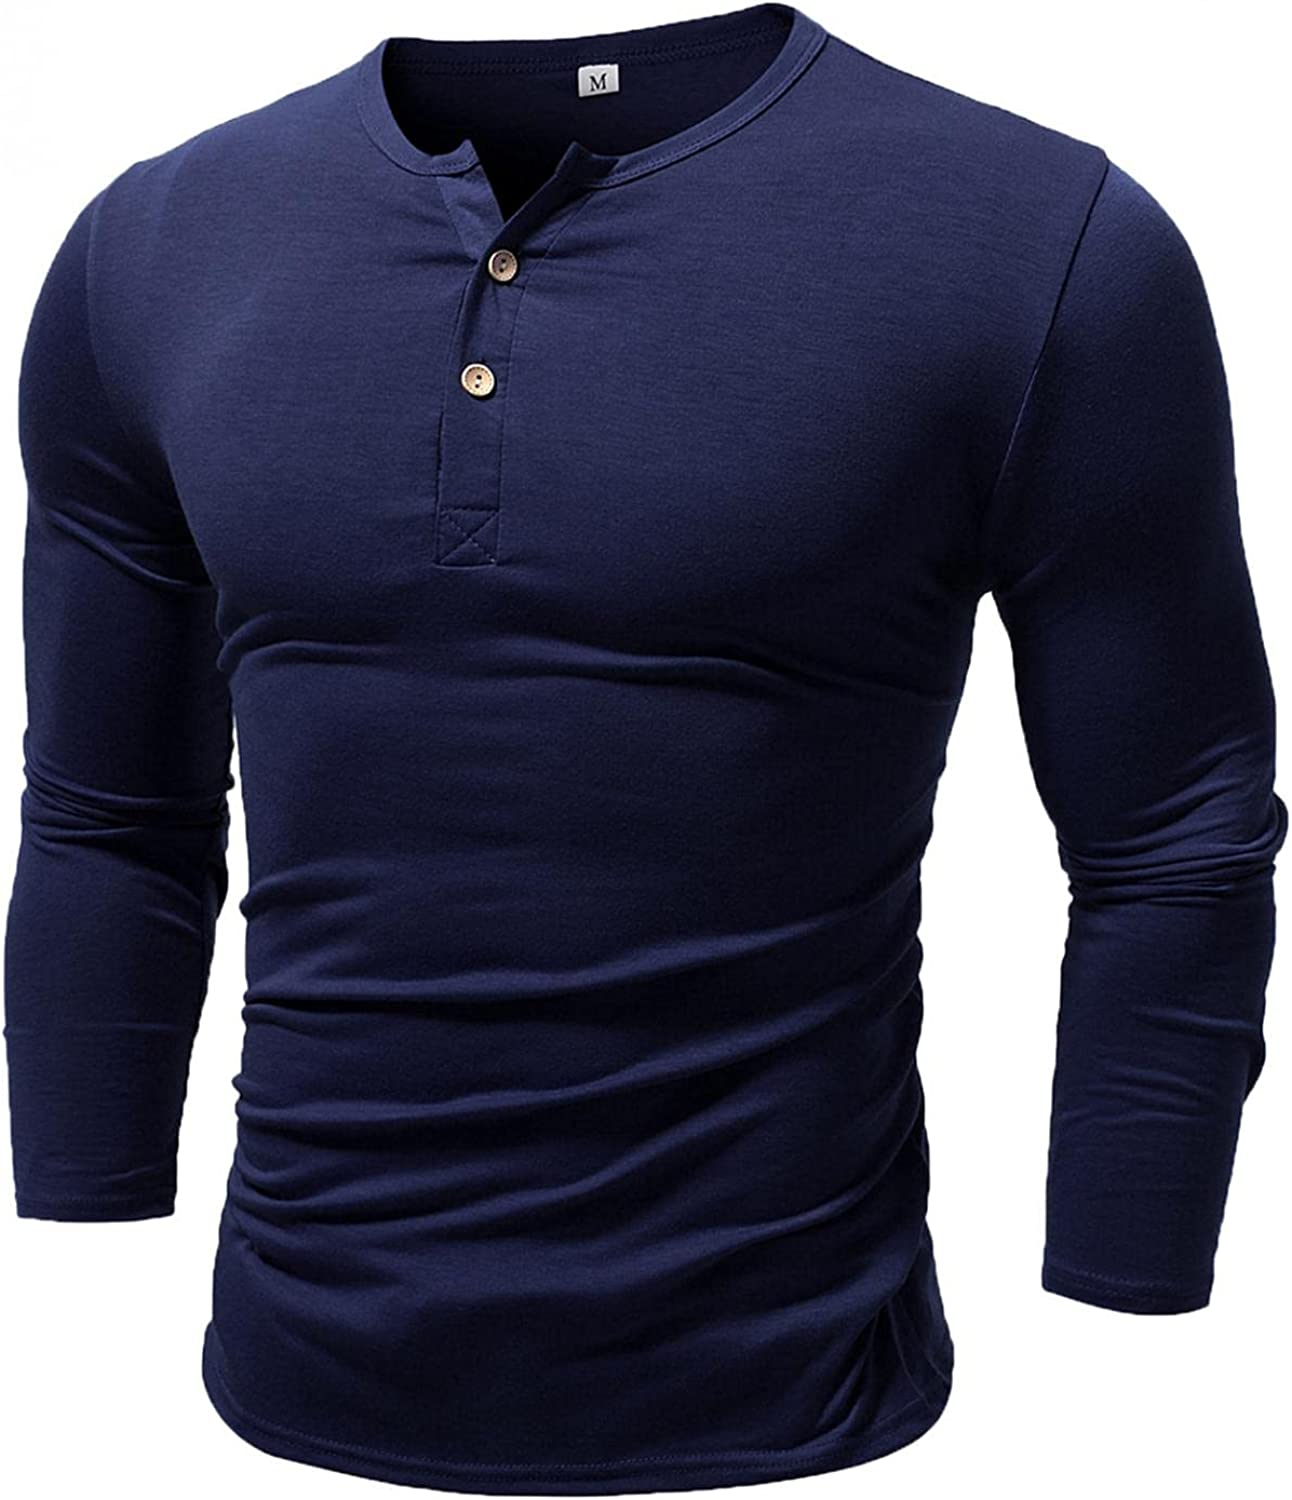 LEIYAN Mens Casual Slim Fit Henley Shirts V-Neck Long Sleeve Active Gym Ahtletic Workout Muscle Tops